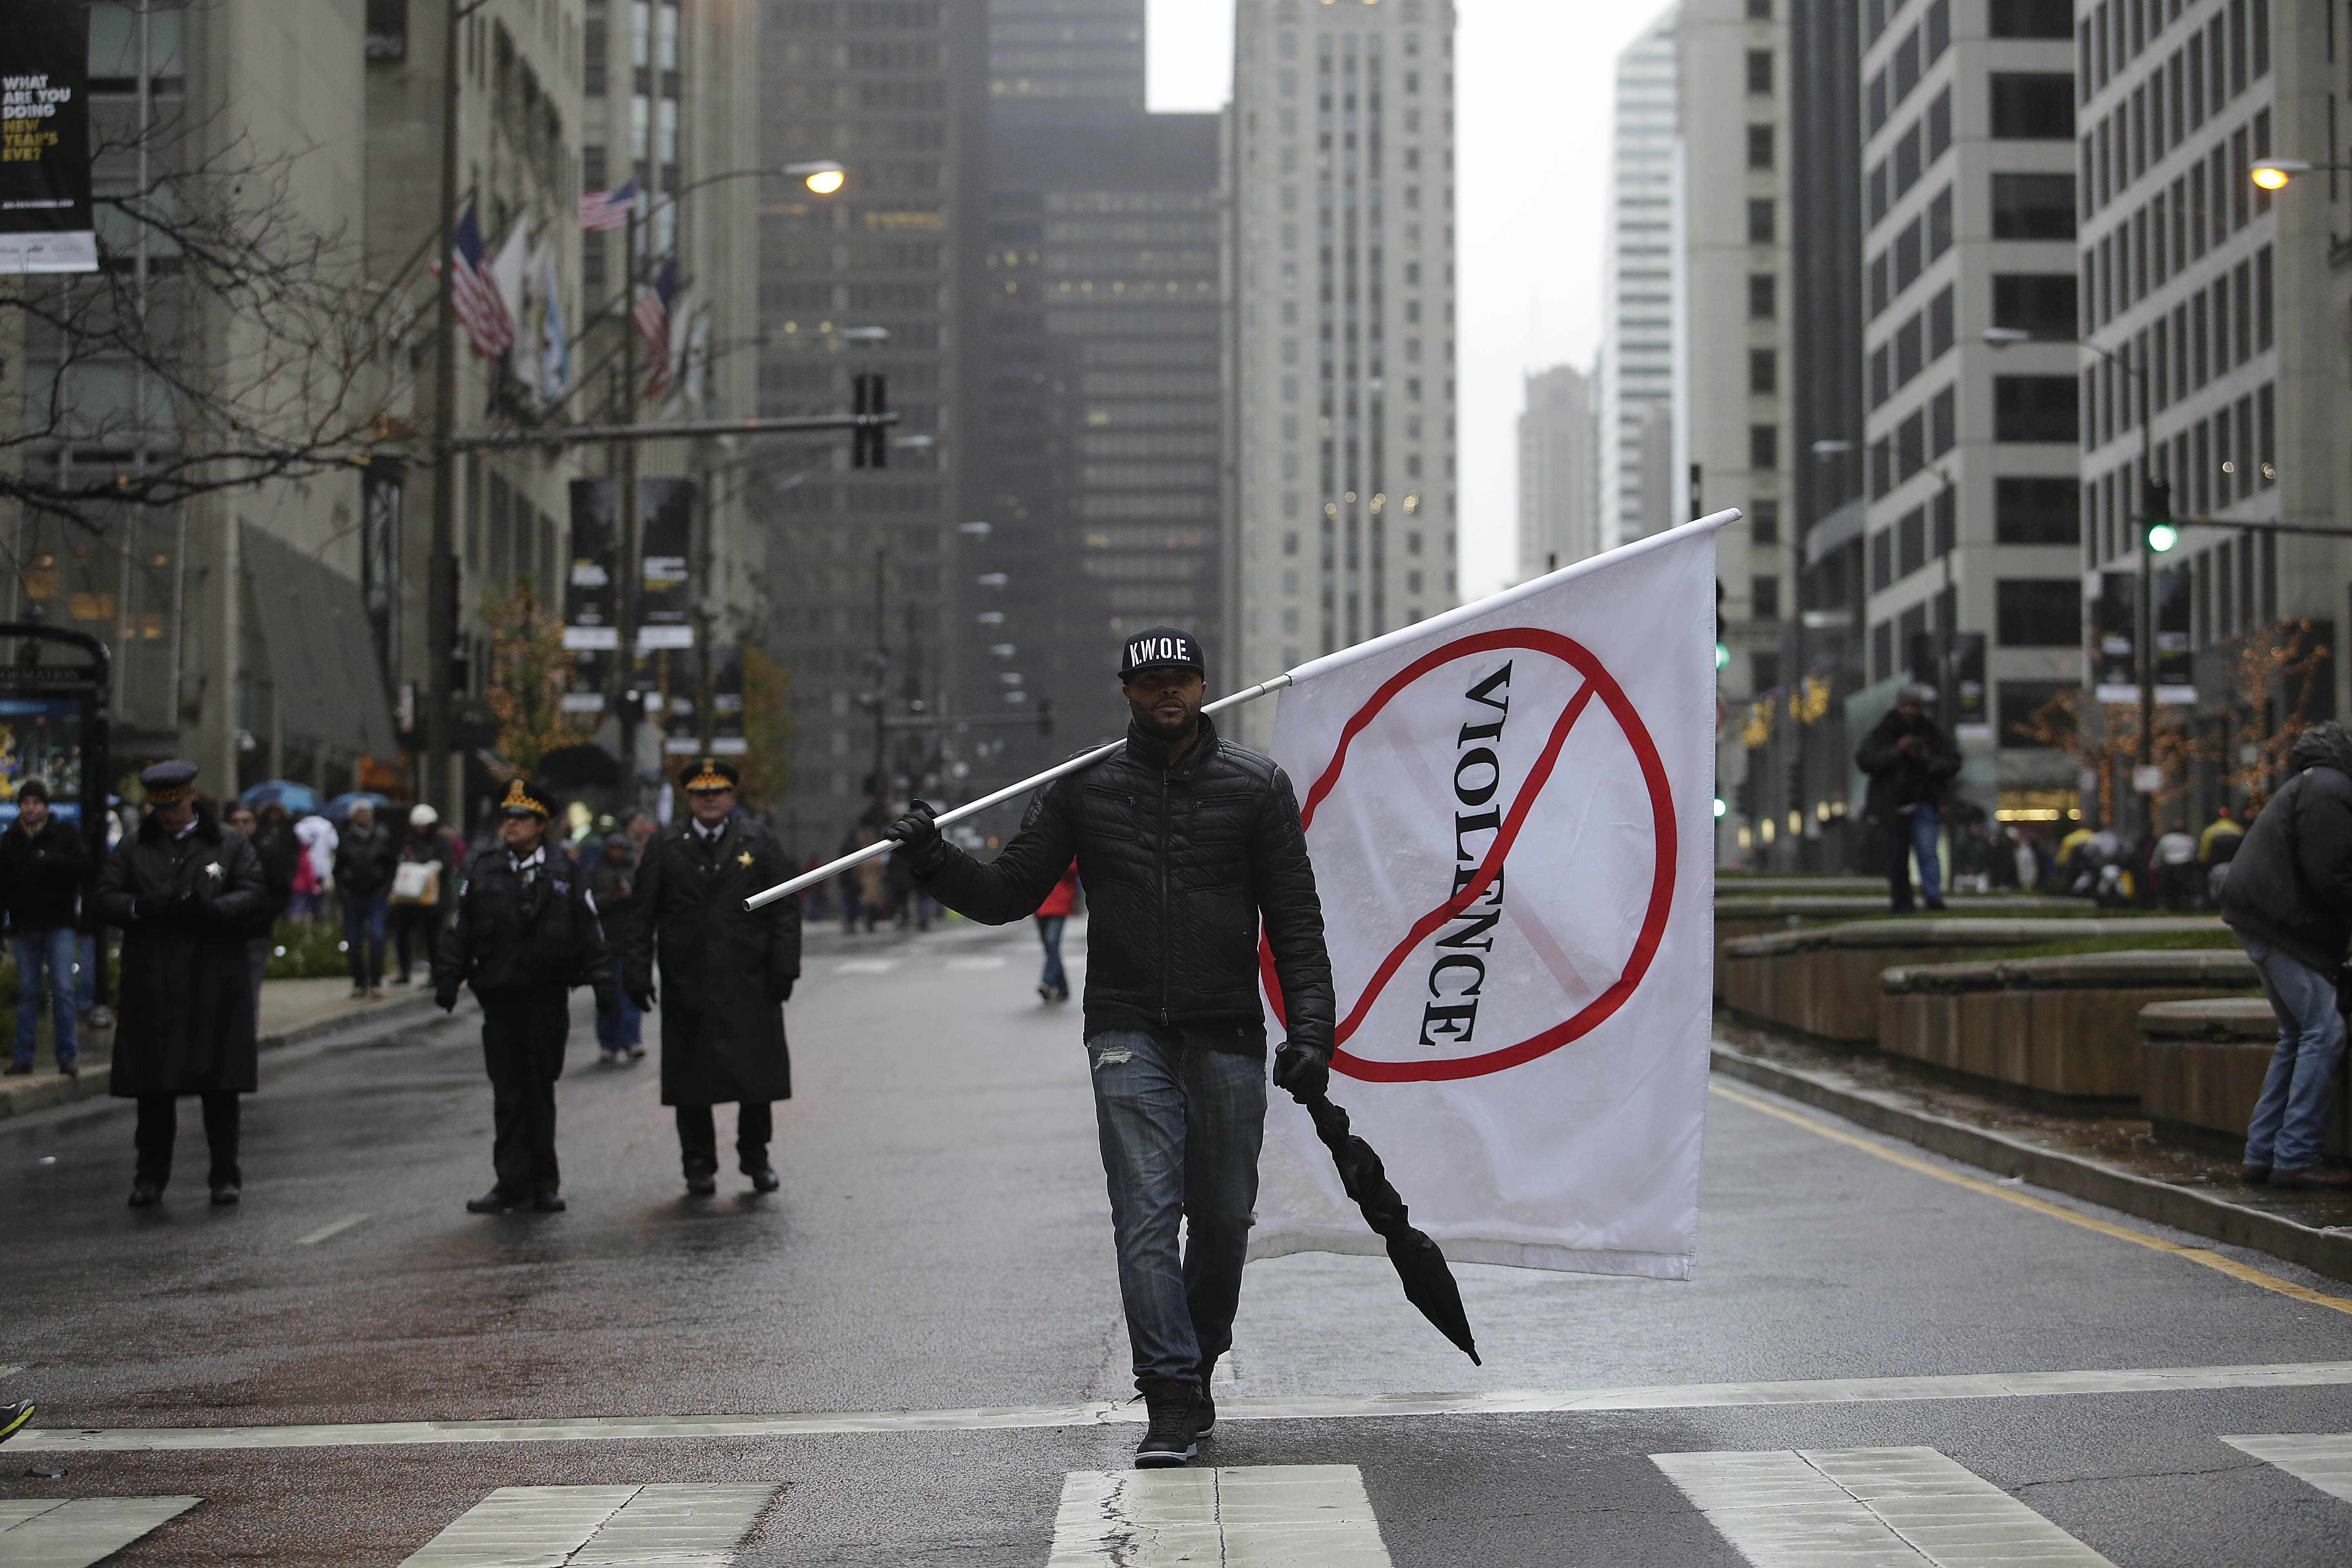 A demonstrator protesting the shooting of Laquan McDonald on Nov. 27, 2015 in Chicago.